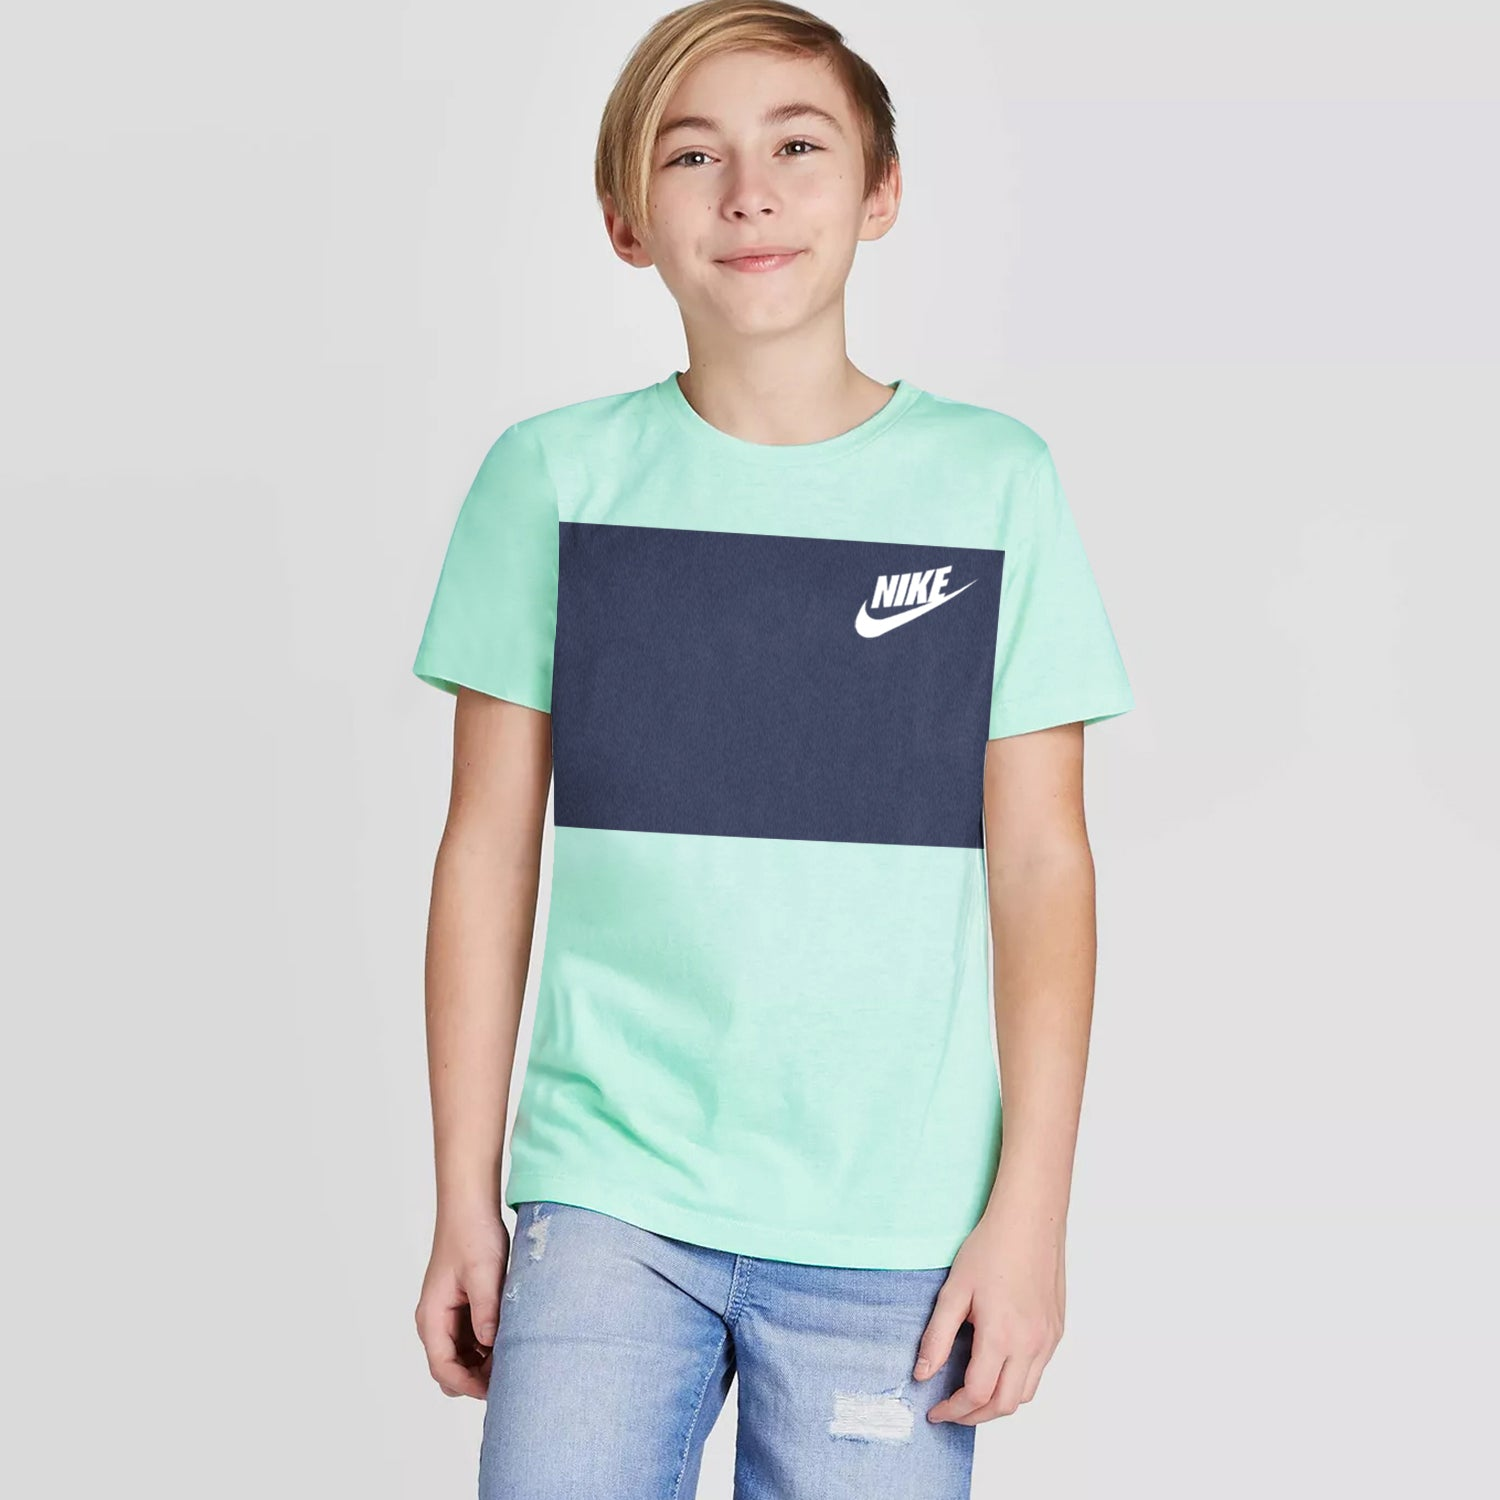 NK Crew Neck Single Jersey Short Sleeve Long Tee Shirt For Boys-Light Sea Green with Purple Panels-BE11956